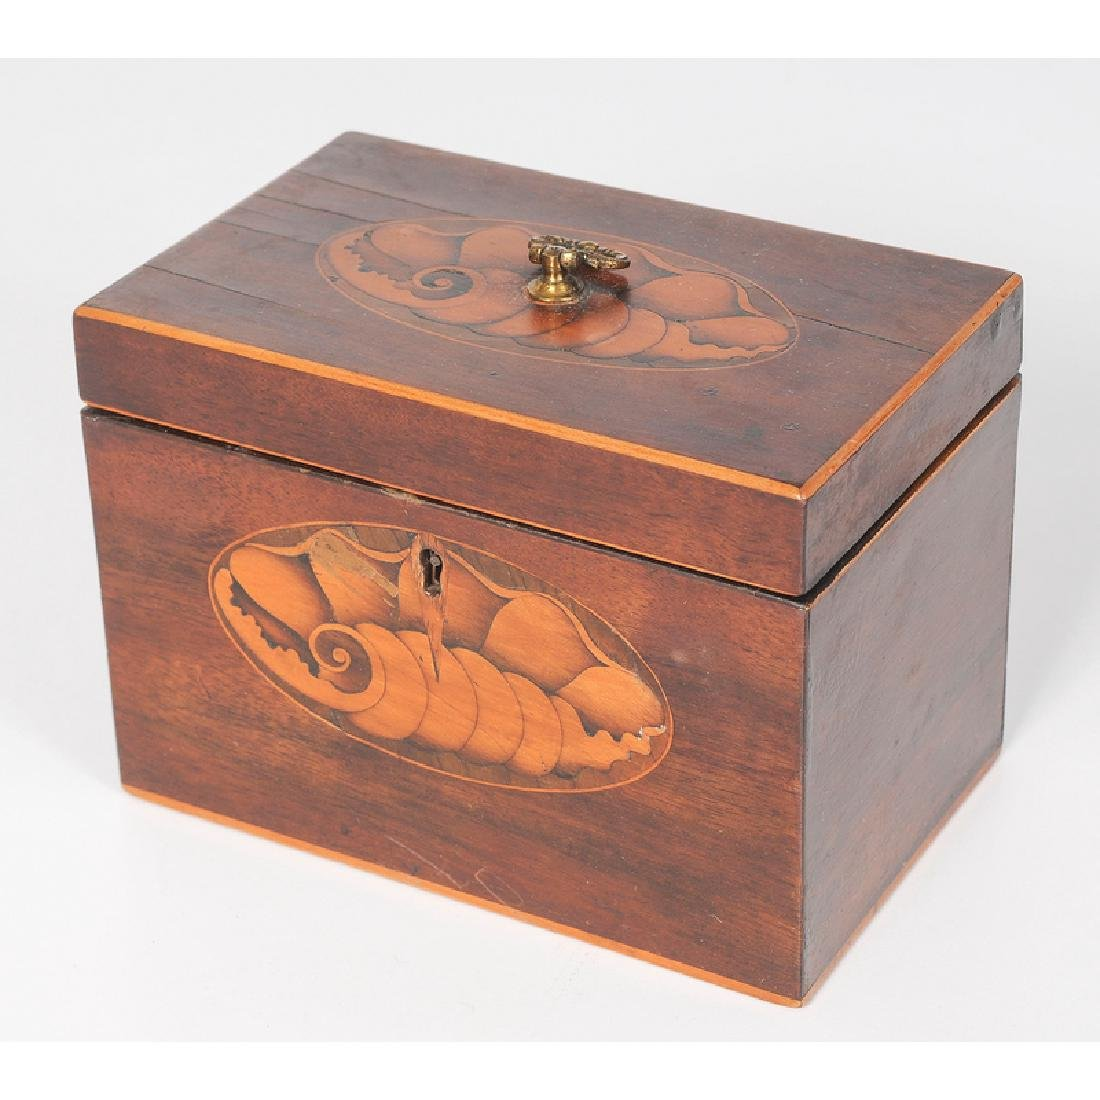 Tea Caddy with Inlaid Conch Shell Decoration